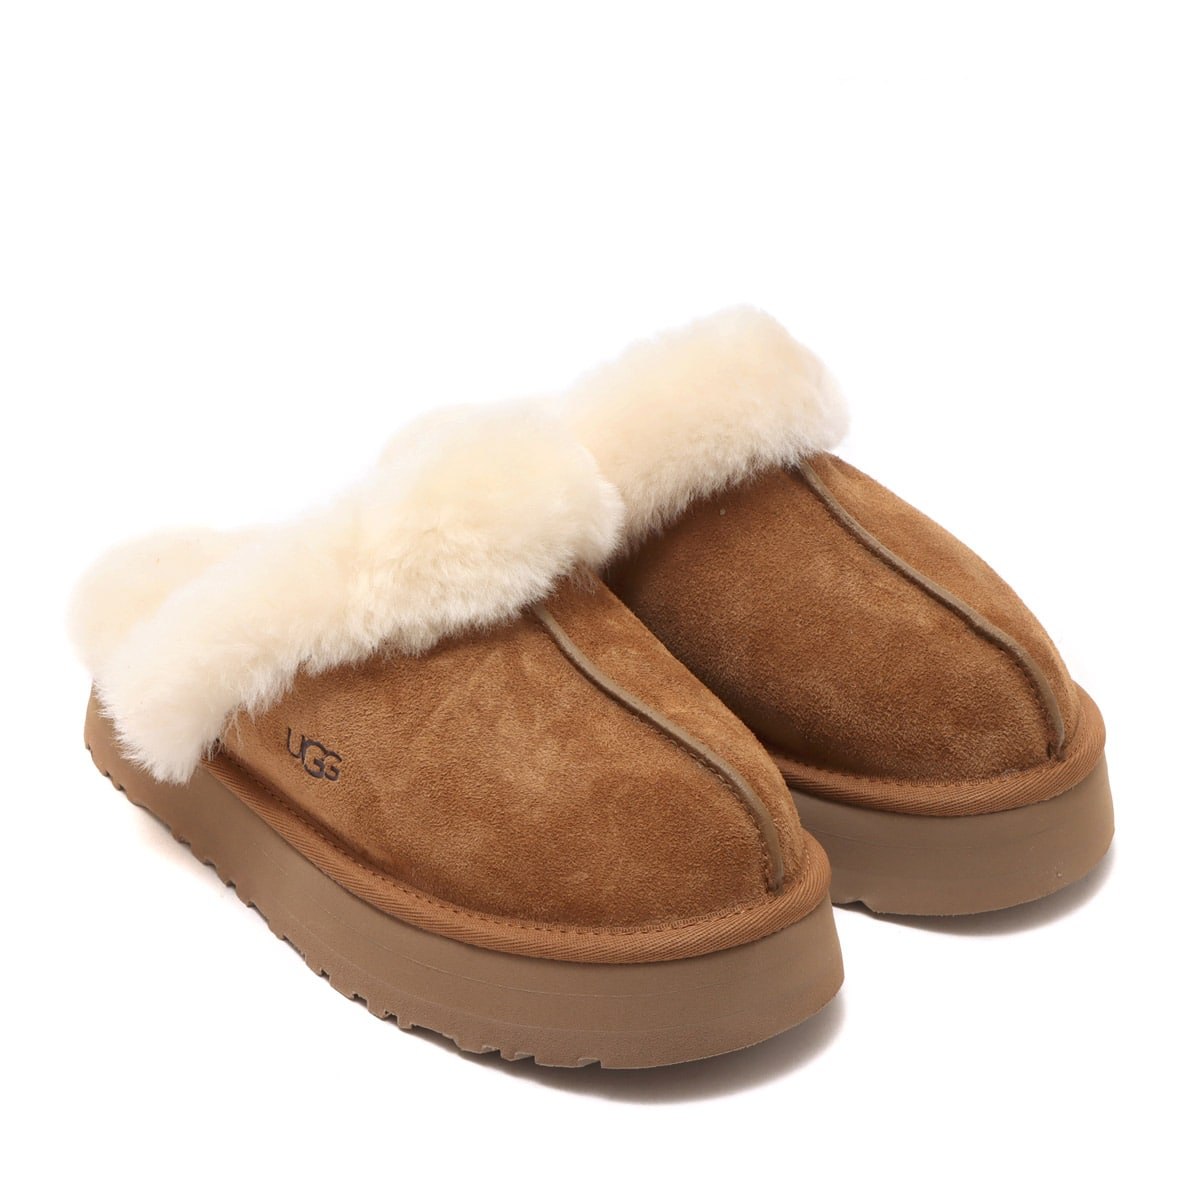 UGG Disquette CHESTNUT 21FW-I_photo_large